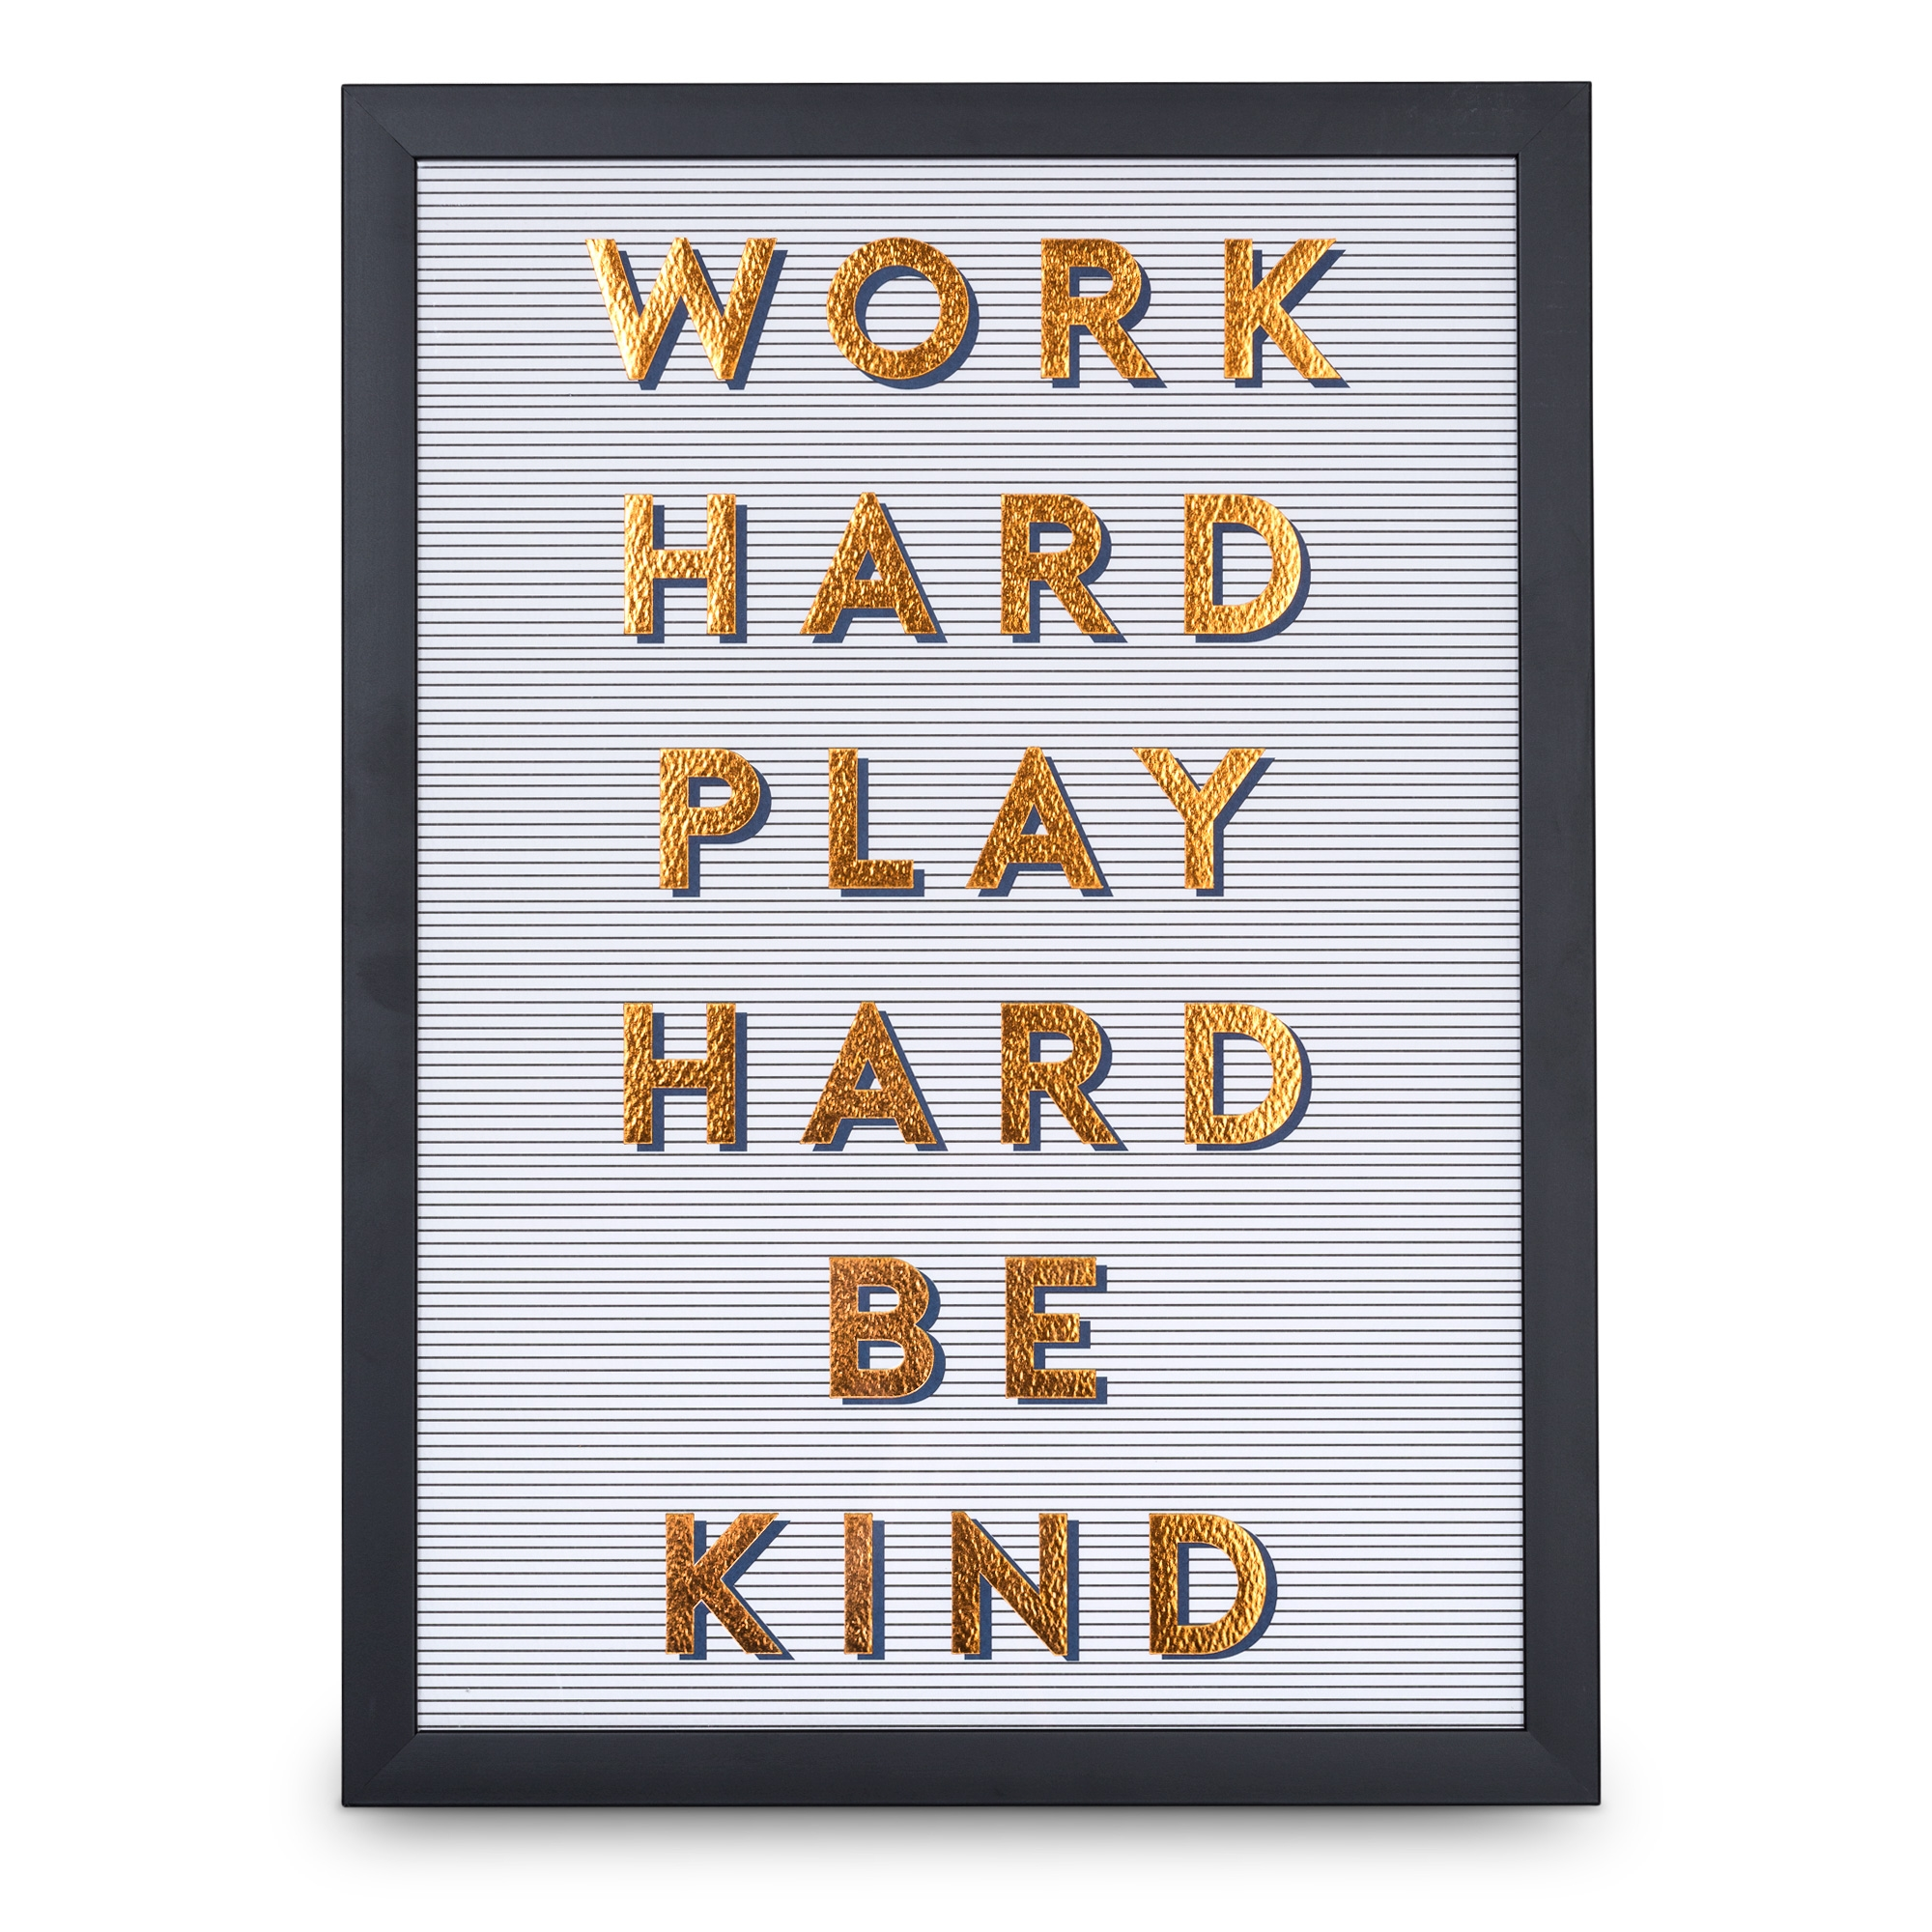 Work Hard Play Hard Amp Be Kind Copper Foiled Wall Art